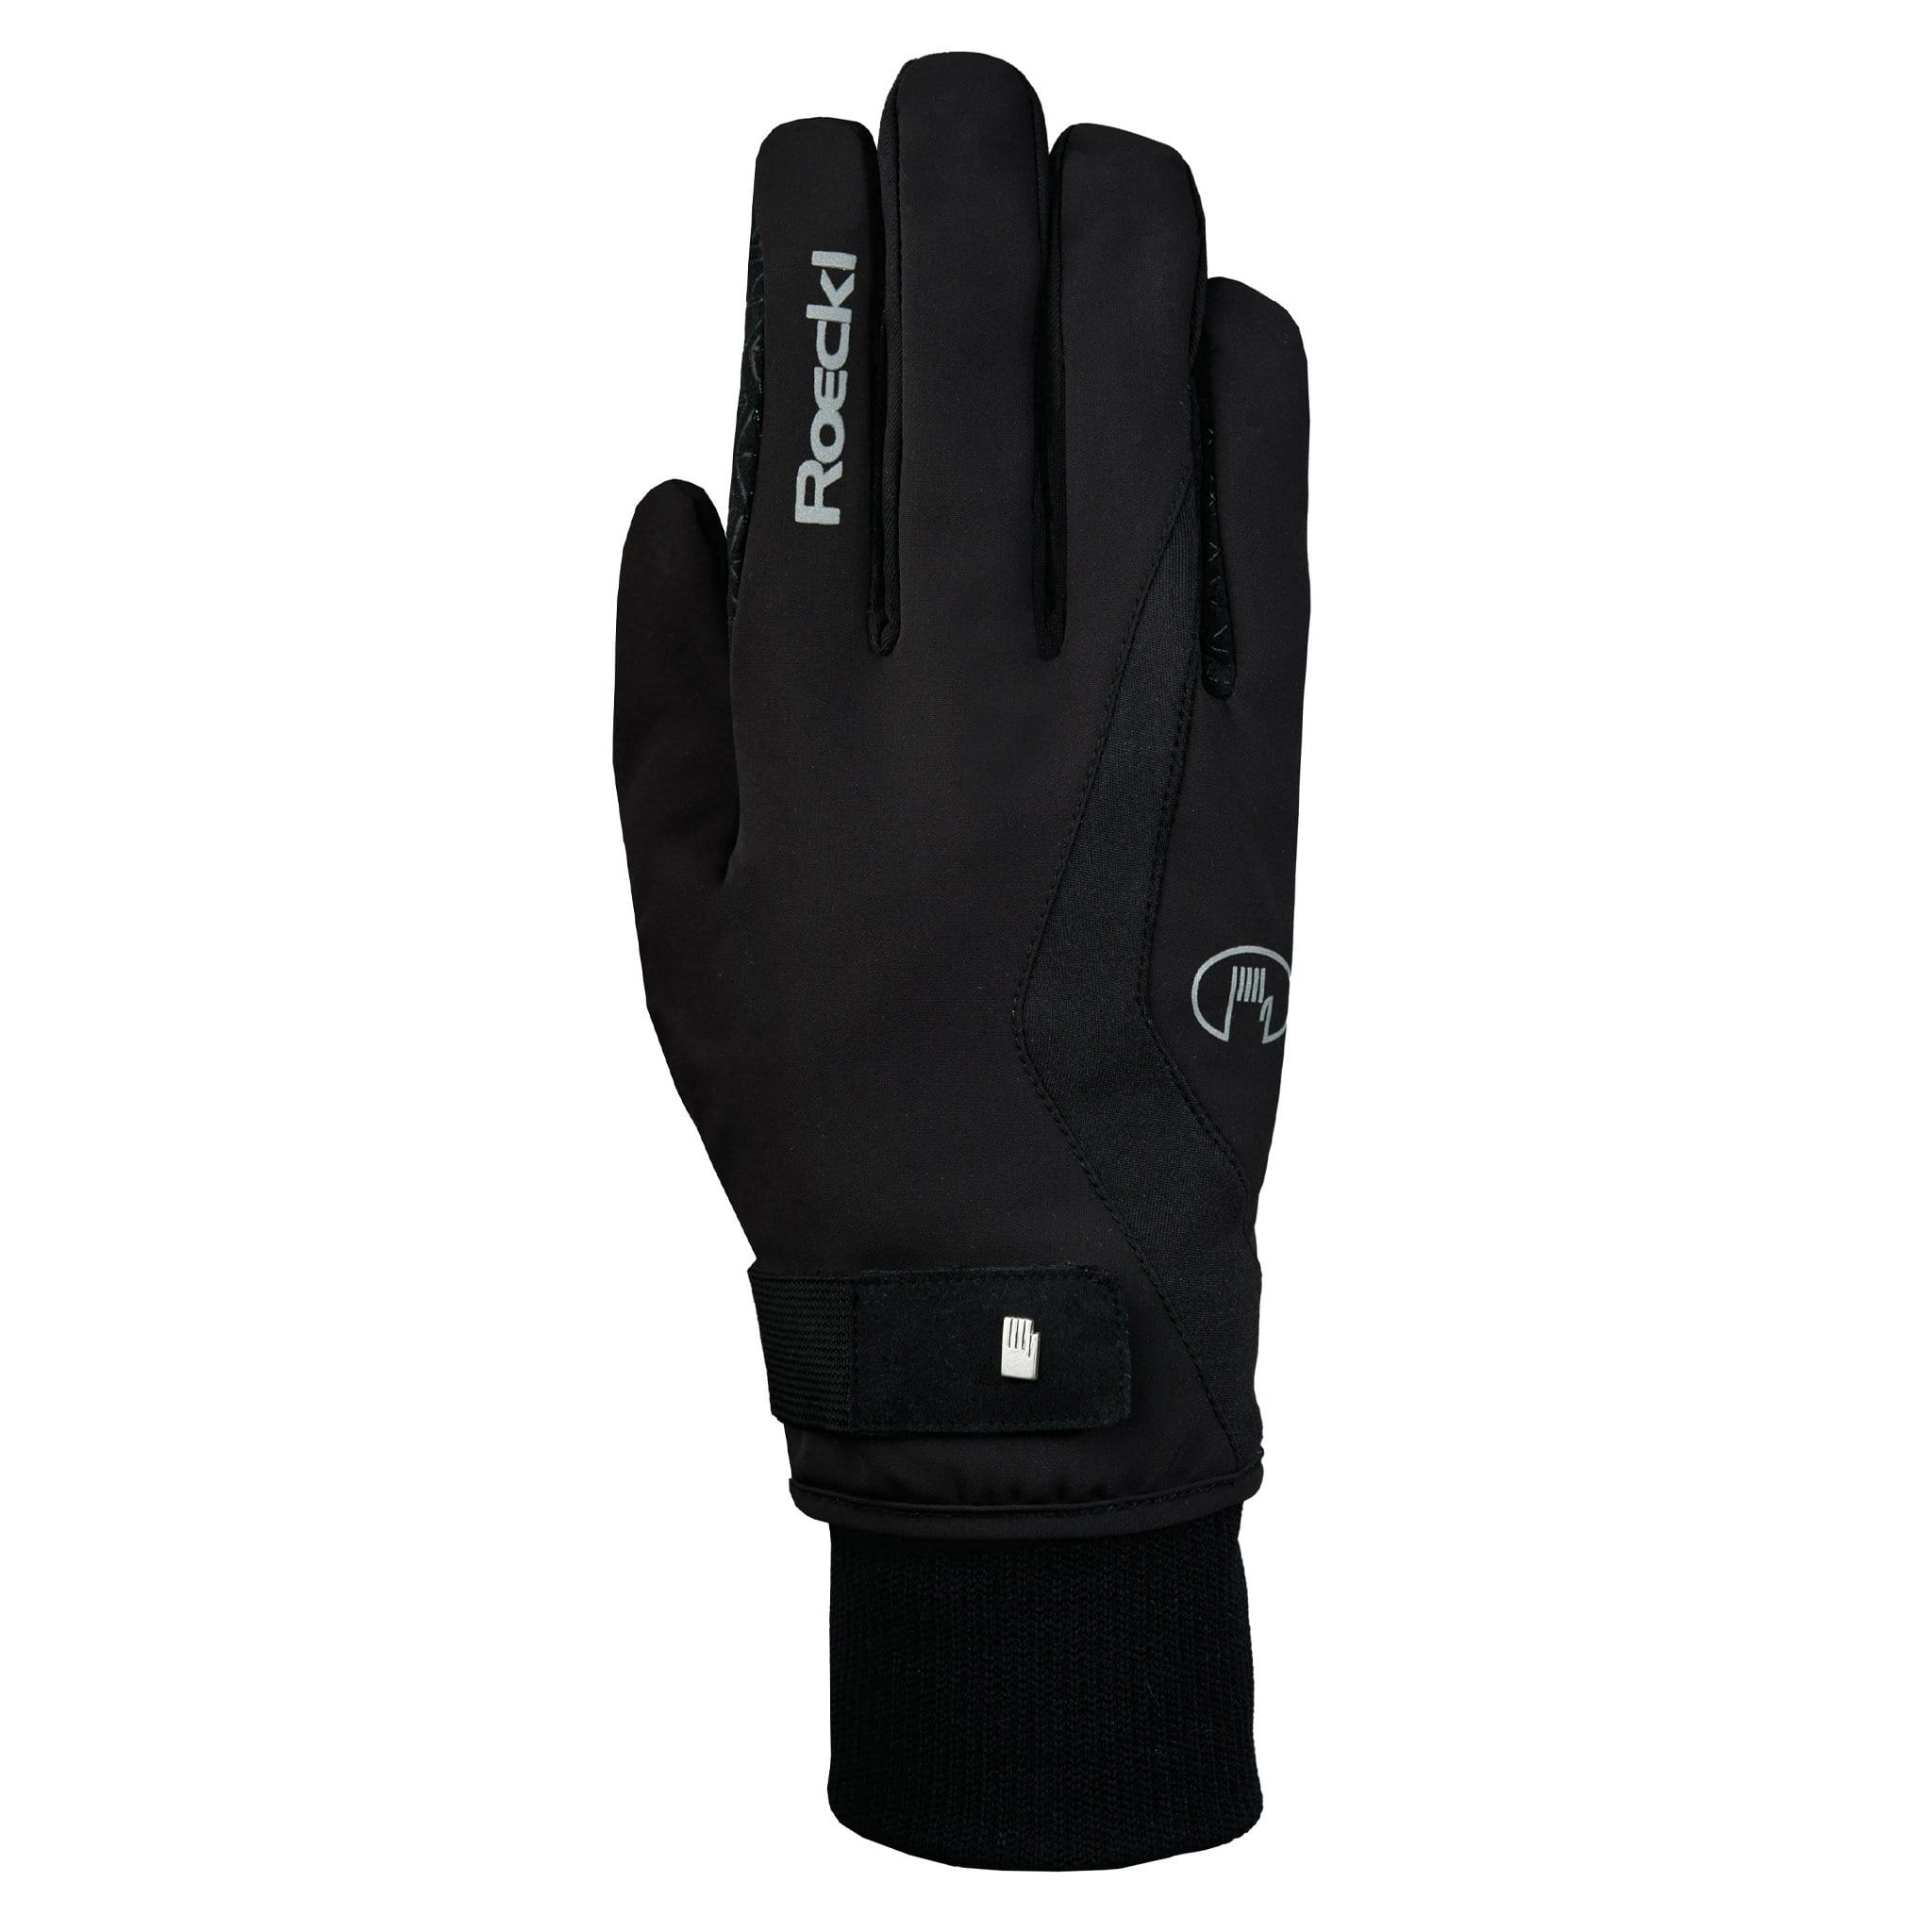 Roeckl Wellington GTX Gloves 3301-560-000 Black Back View